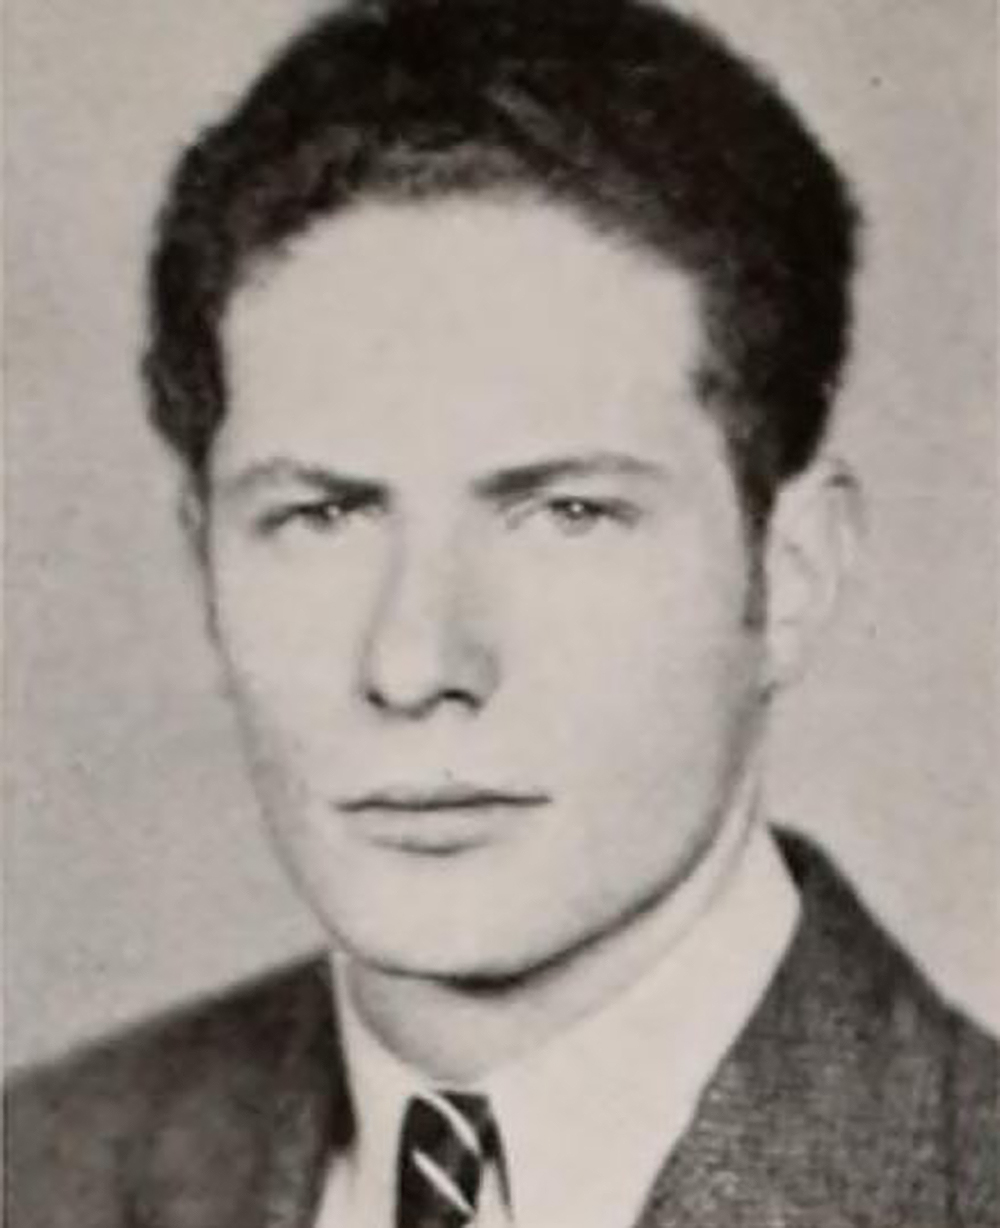 Photograph of Sheldon Harte from the Duke University yearbook of 1937, the year he graduated college.